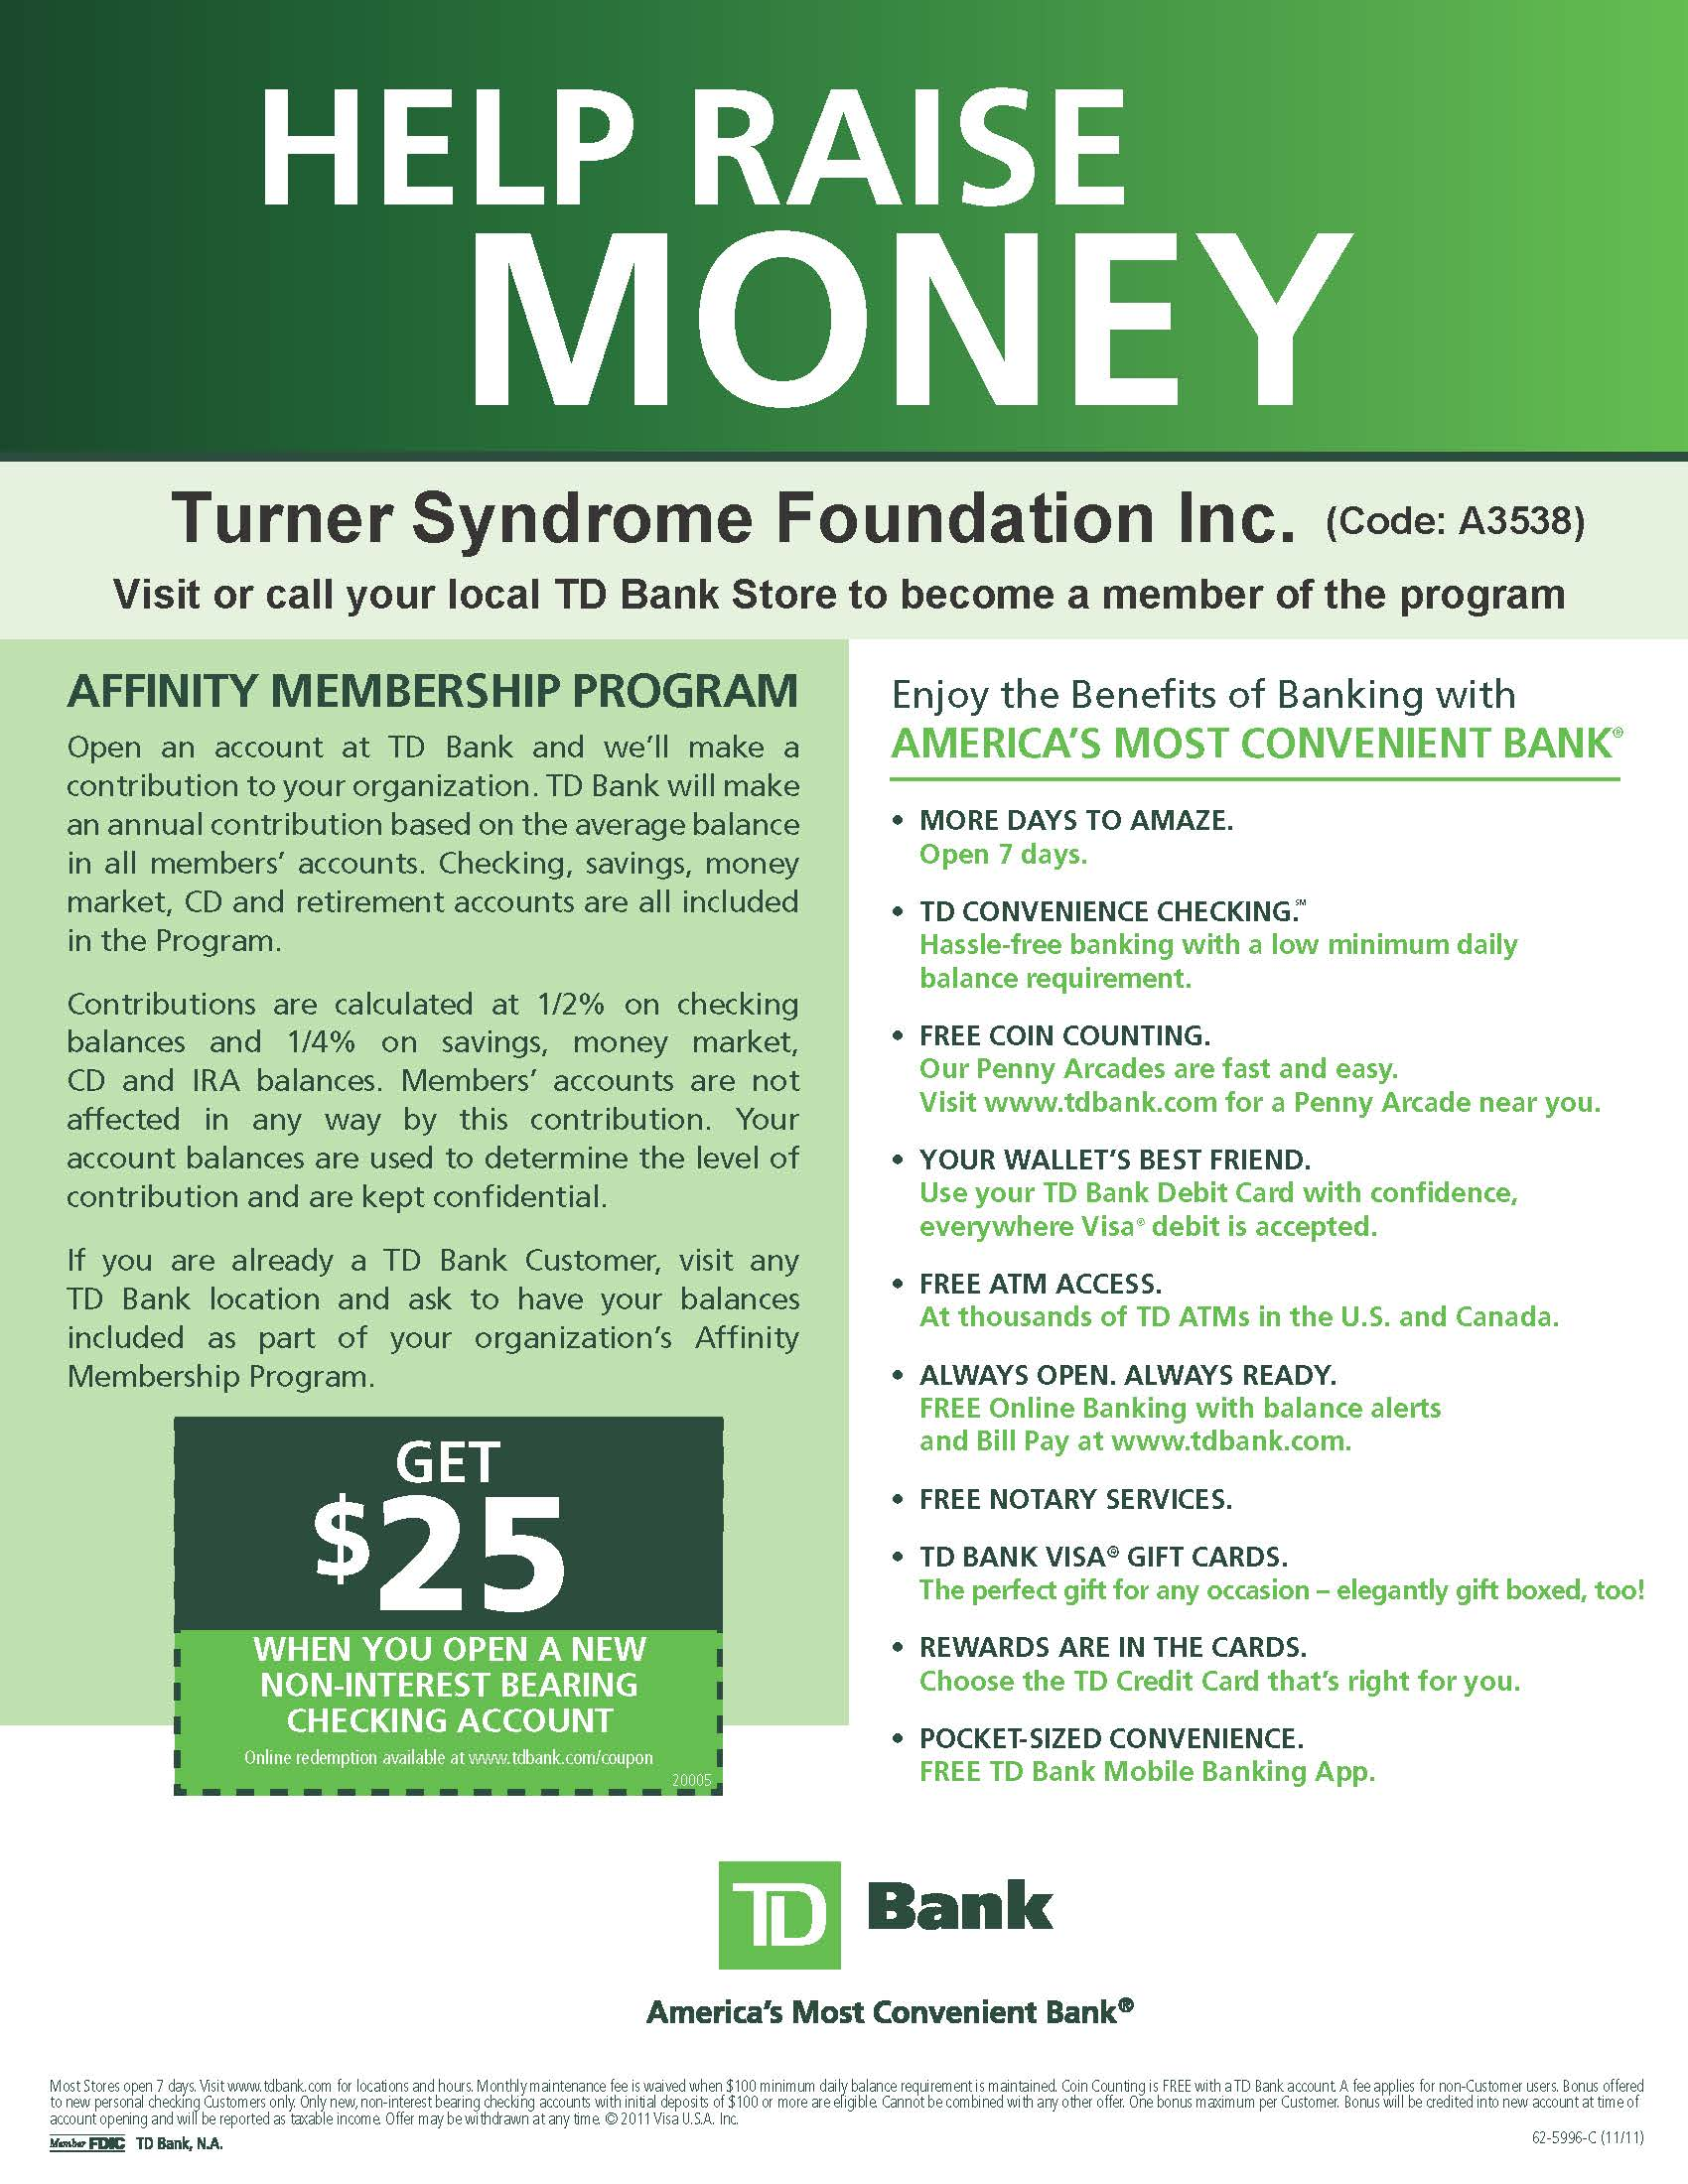 Support Turner Syndrome Foundation with the TD Bank Affinity Program